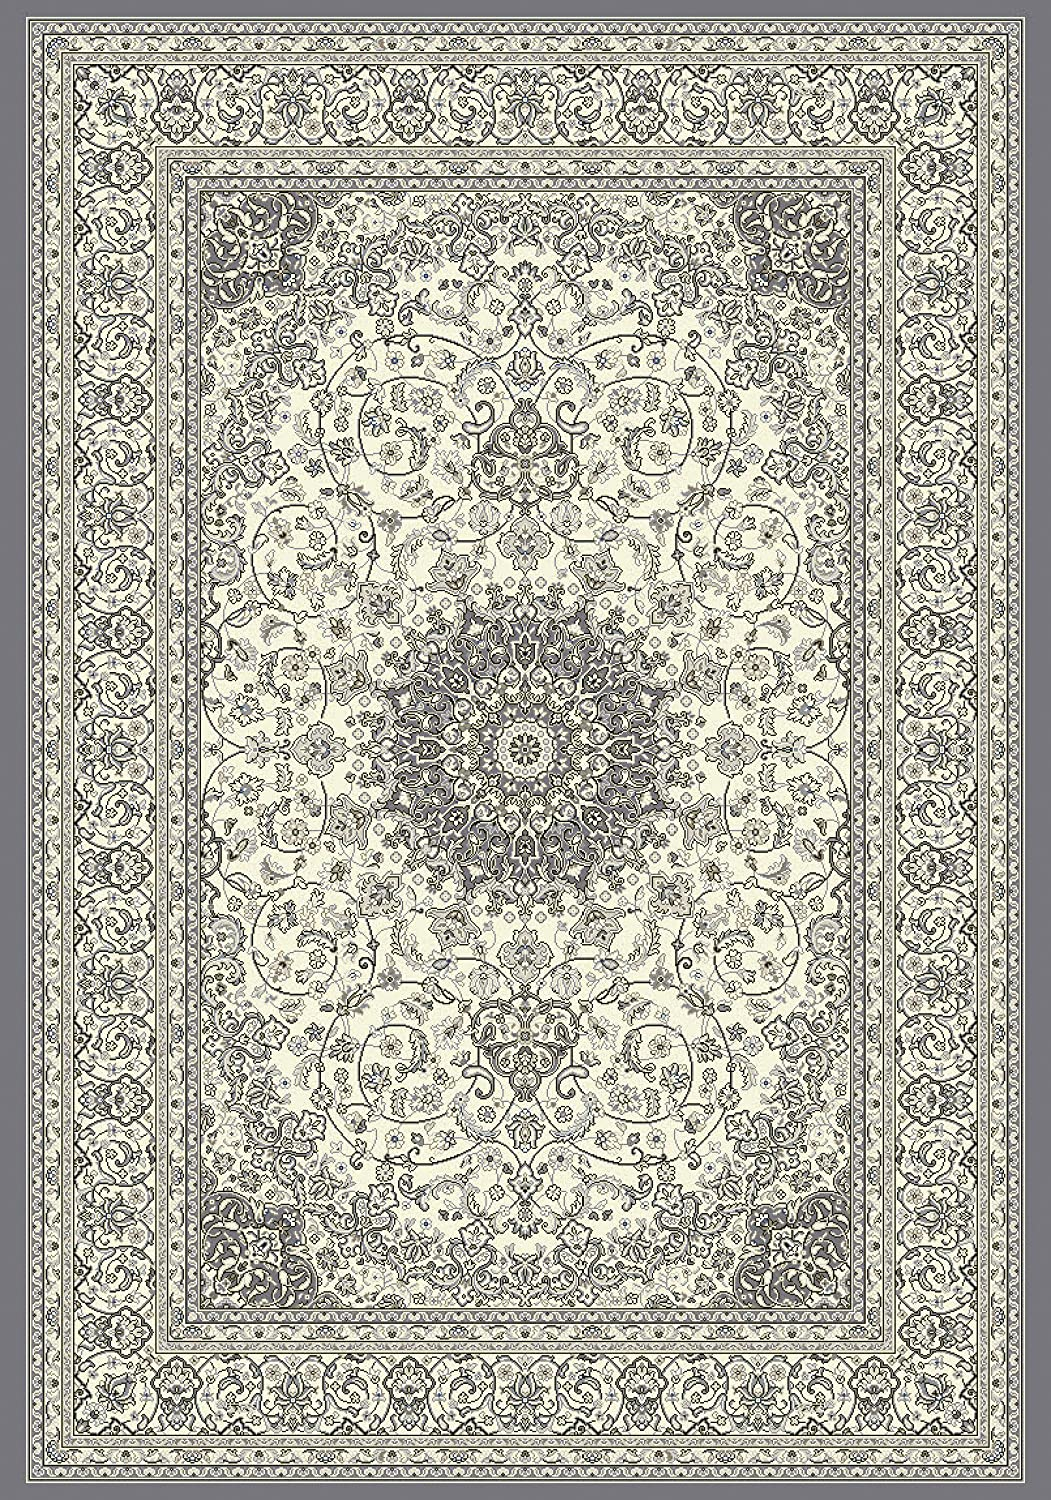 Dynamic Rugs AN28571196656 Ancient Garden Collection Runner Rug 22 x 77 Cream//Grey